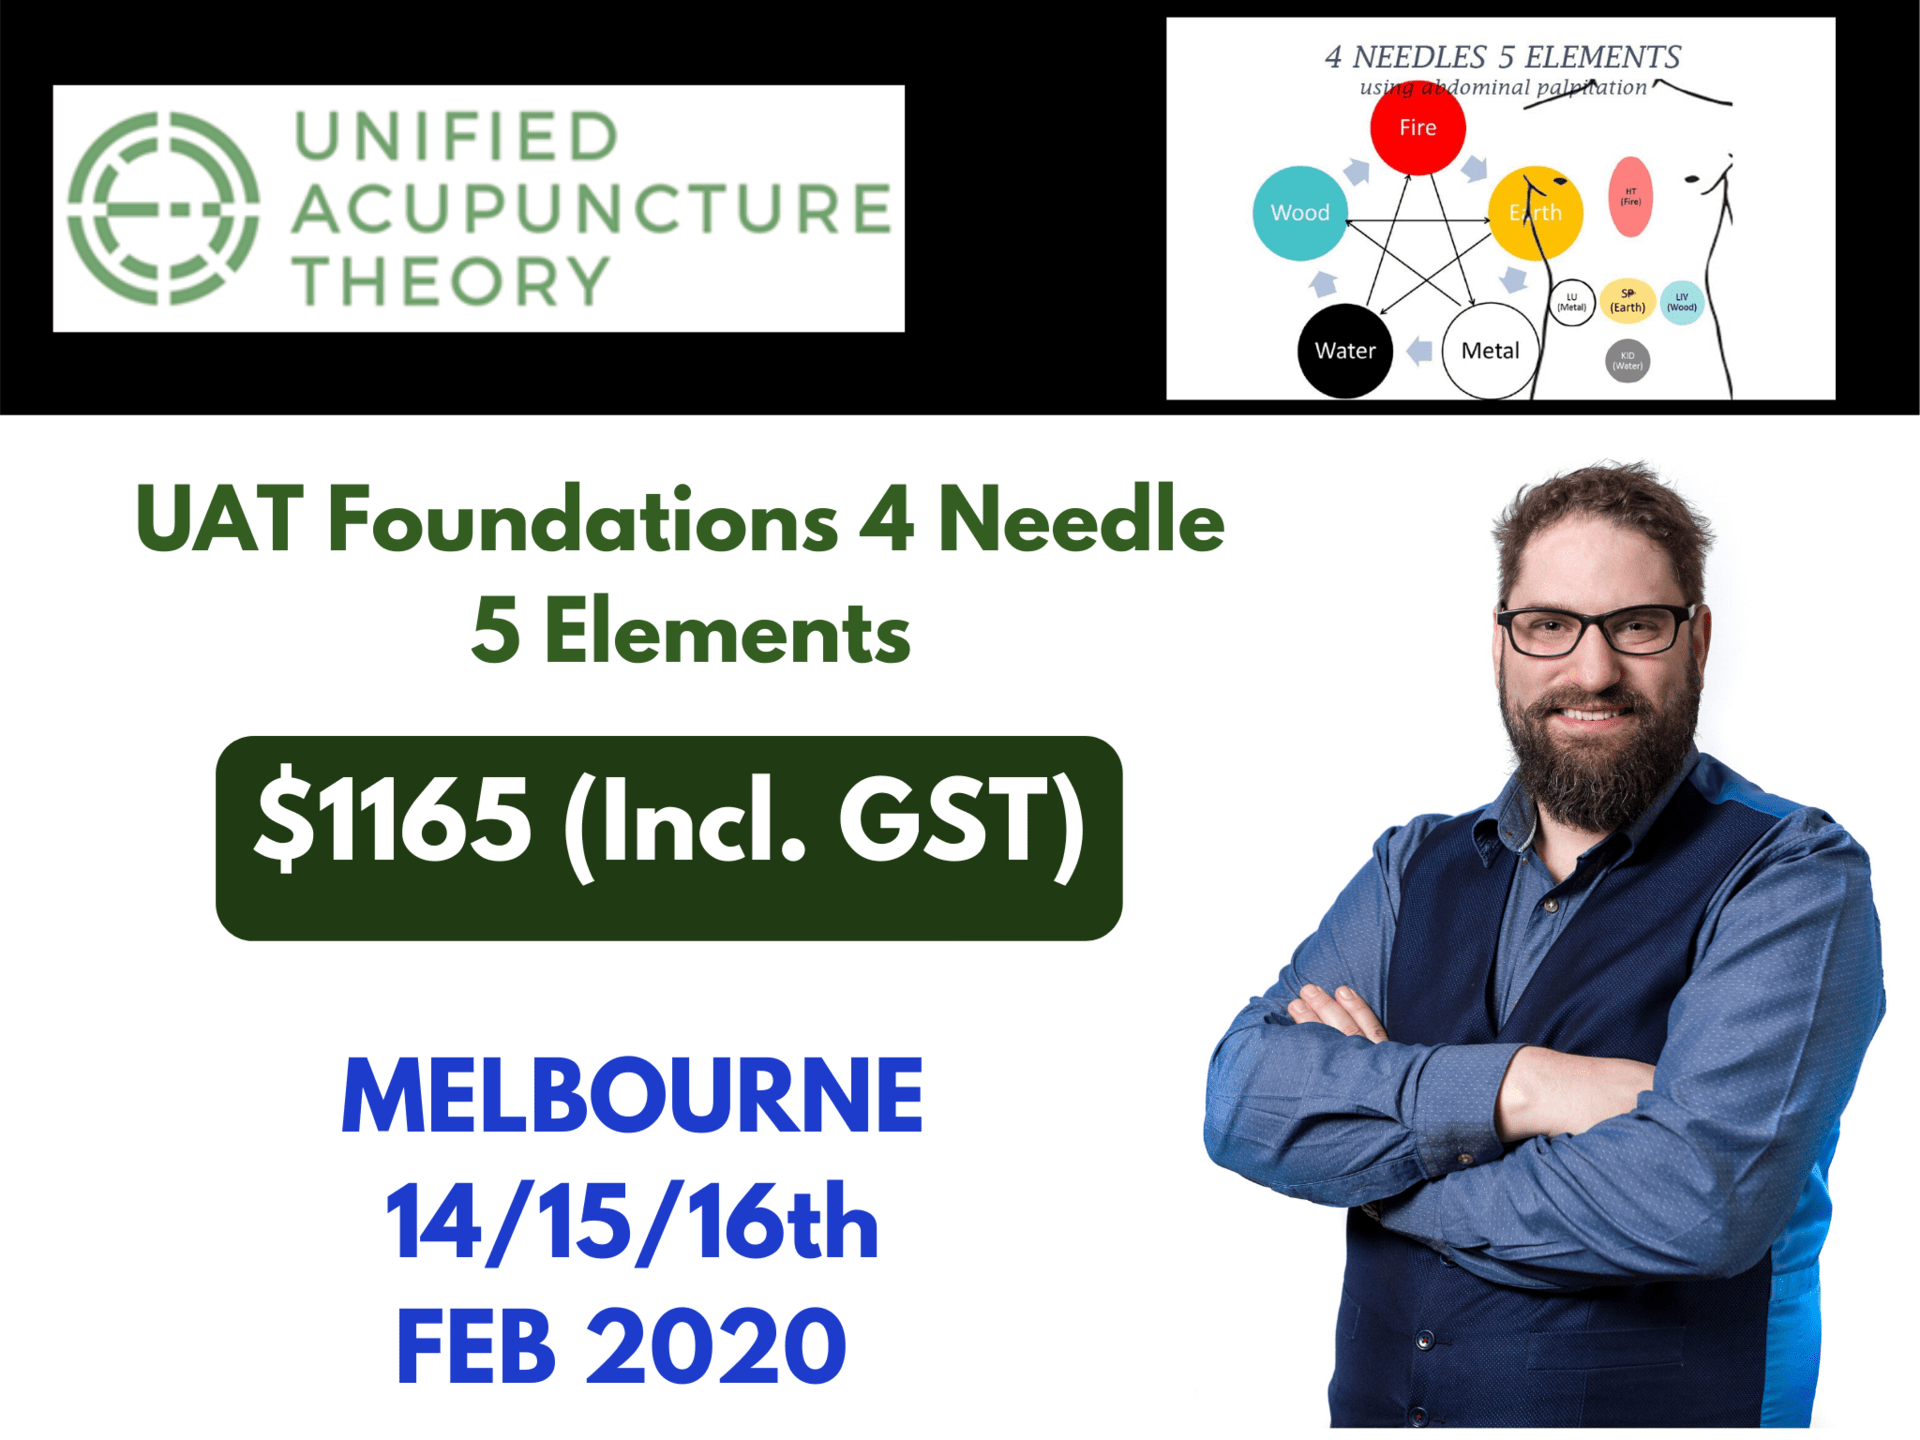 UAT Foundations 4 Needle 5 Elements - MELB